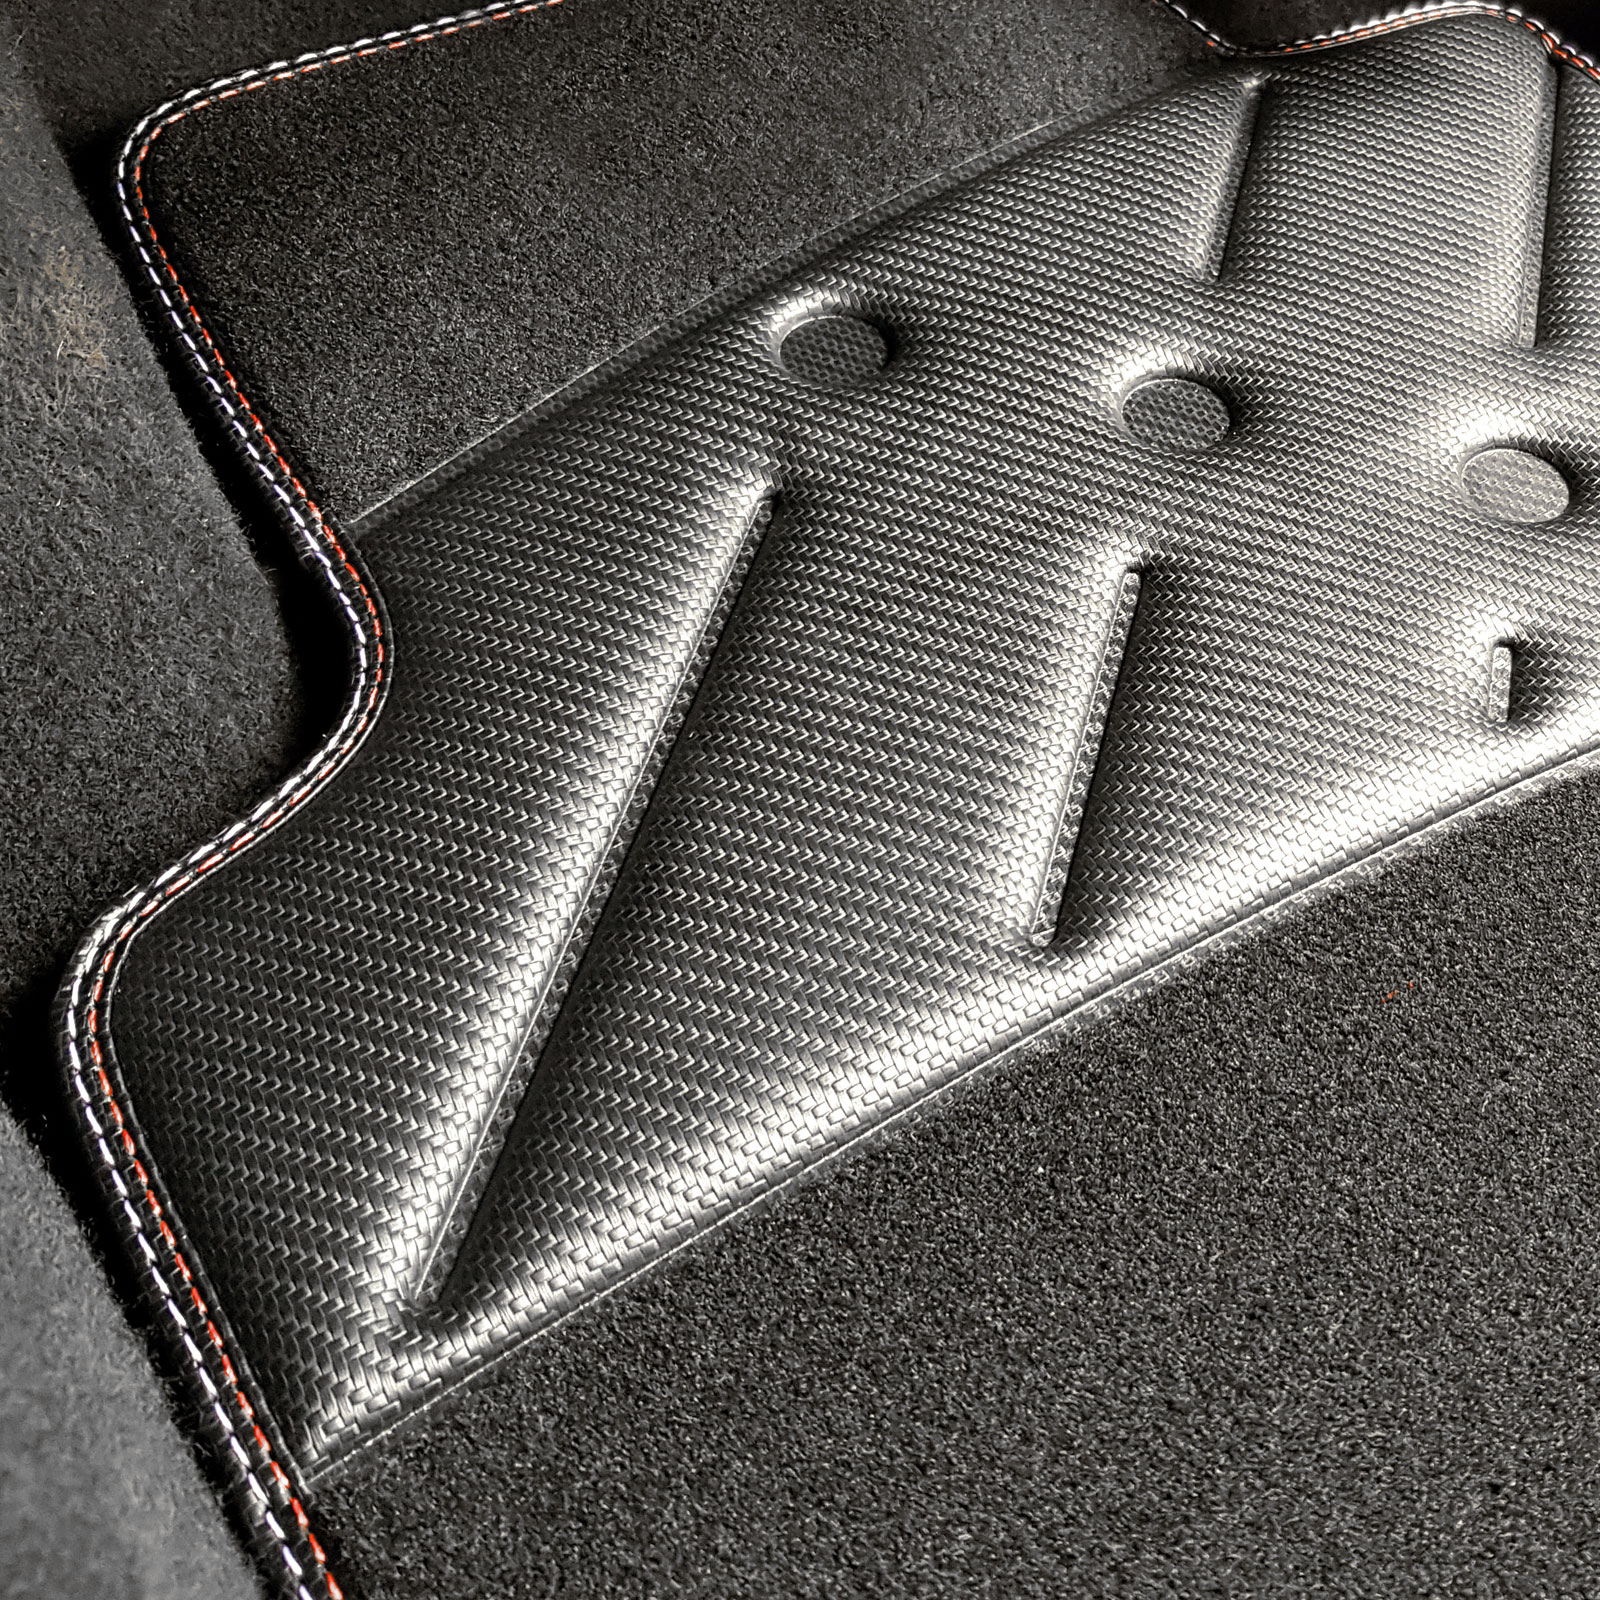 Toyota Supra MK4 Car Mats 1993-1996 Carbon Tailored RHD